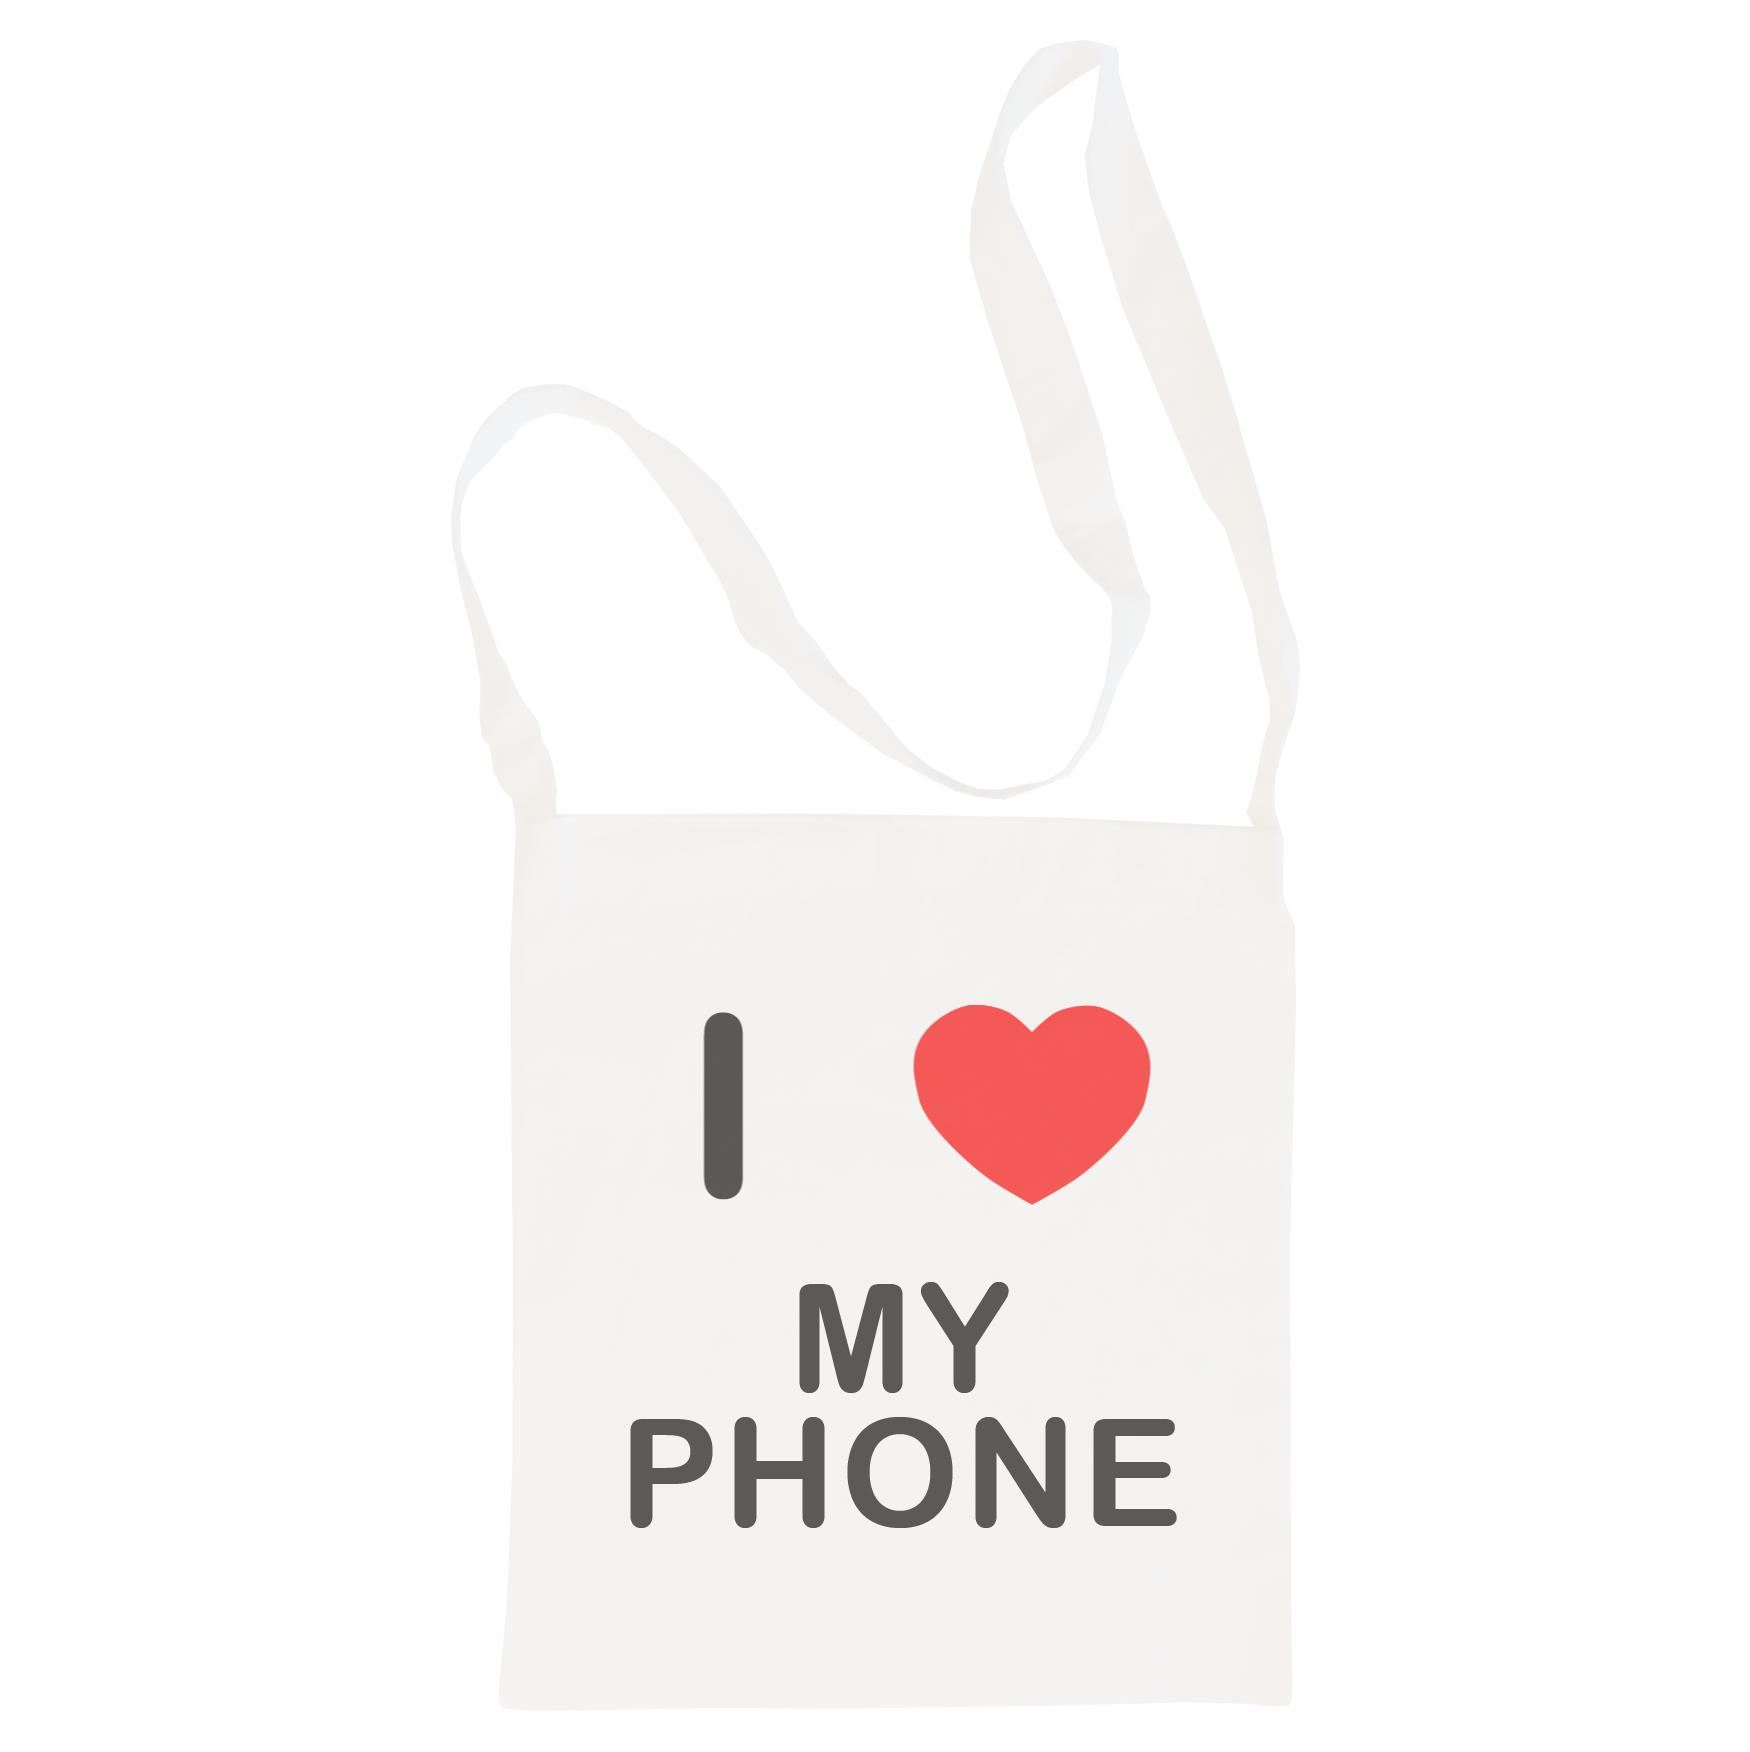 I Love My Phone - Cotton Bag | Size choice Tote, Shopper or Sling